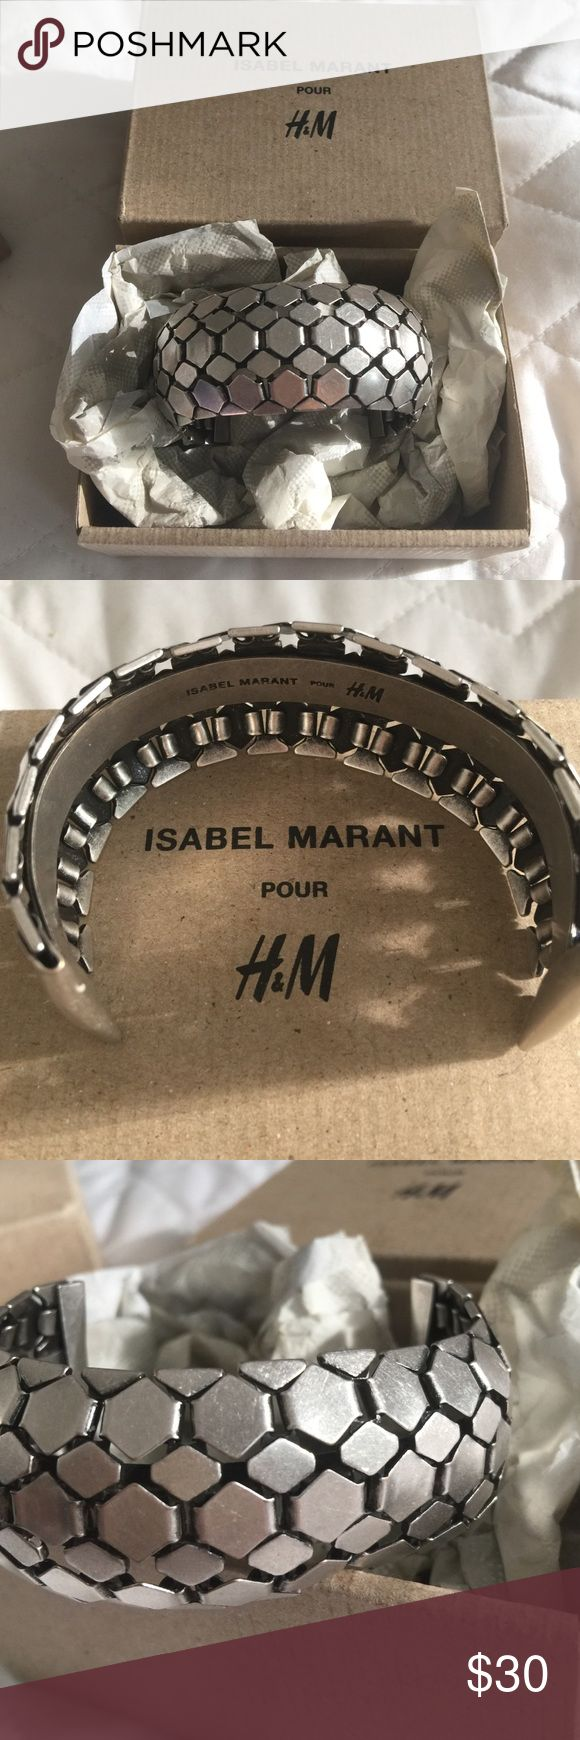 ISABEL MARANT METAL CUFF NIB Isabel Marant H&M adjustable cuff. Comes with box. Was a gift so price was peeled of box. Isabel Marant pour H&M Jewelry Bracelets